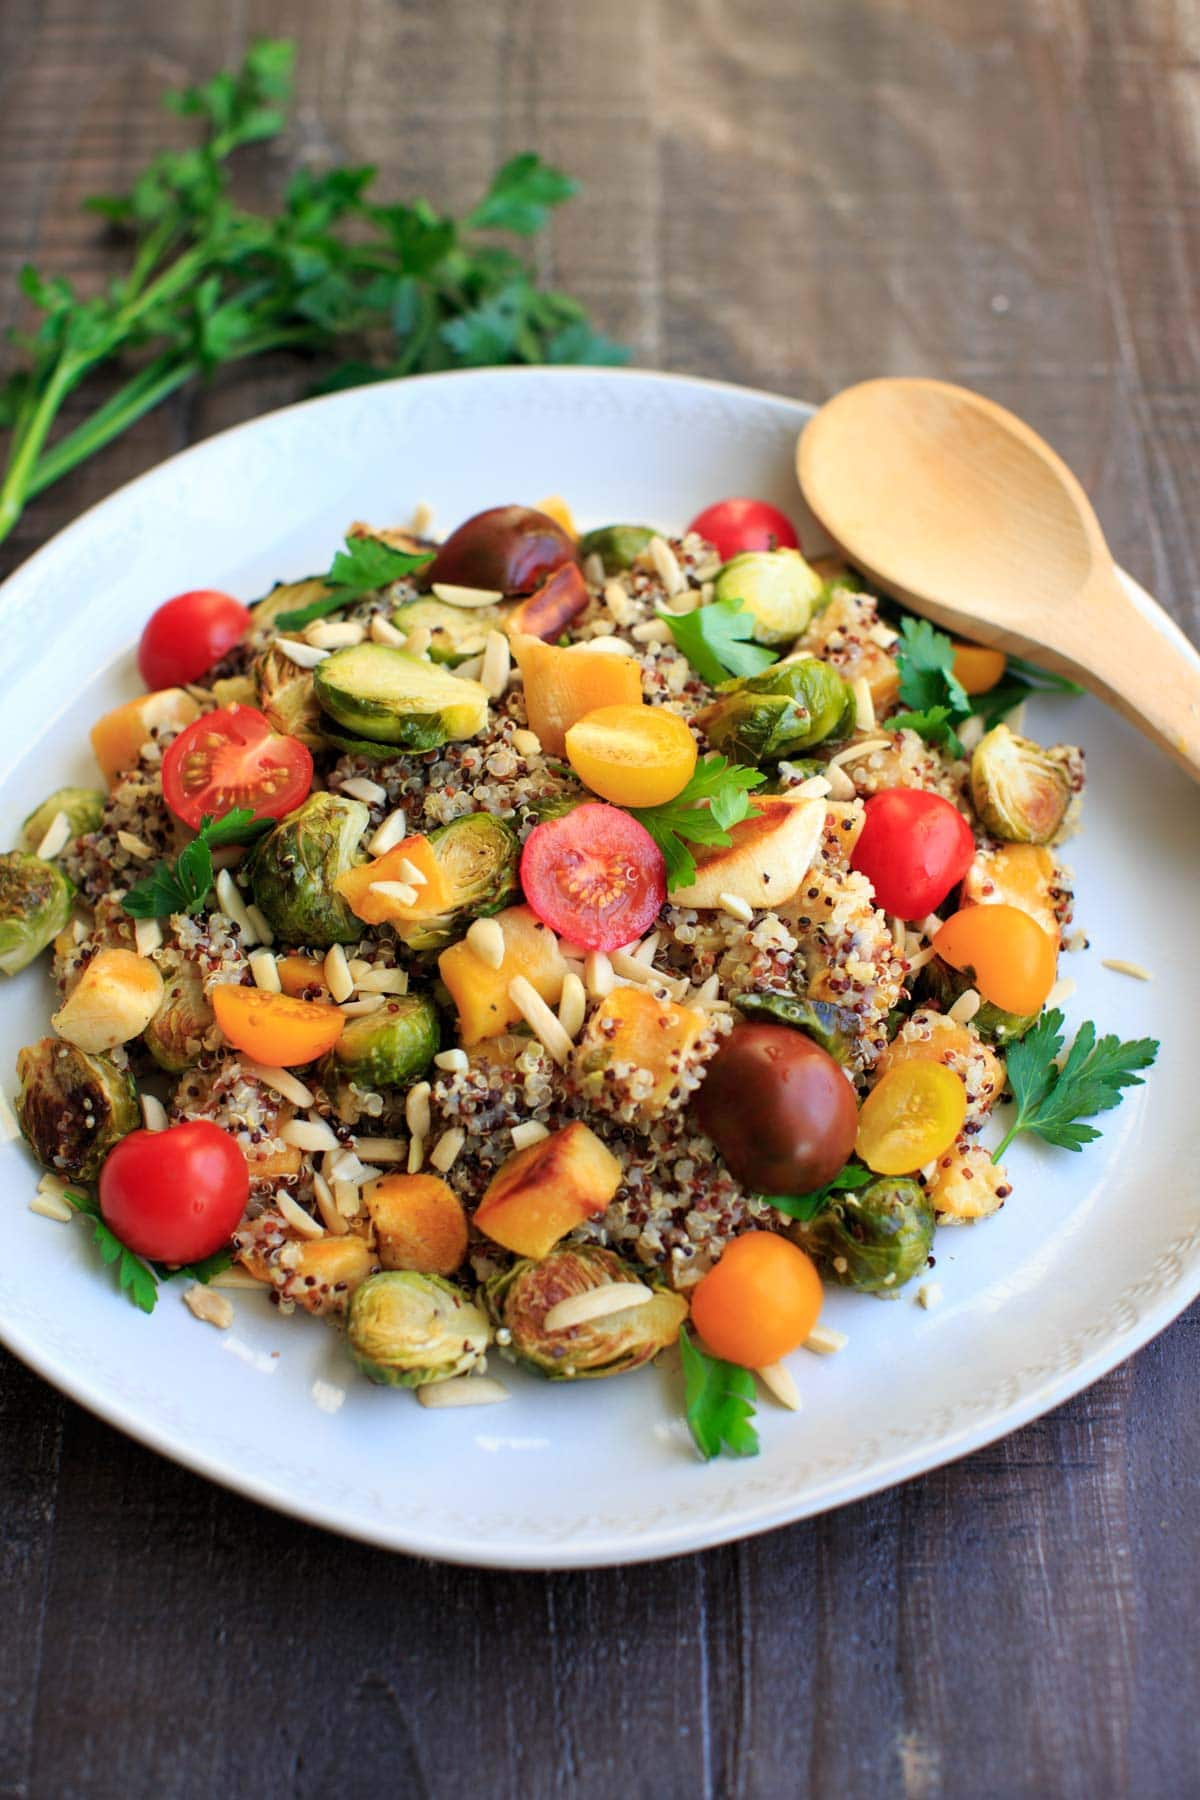 Fall Quinoa Salad with Brussels Sprouts, Butternut Squash, Tomatoes and Parsley